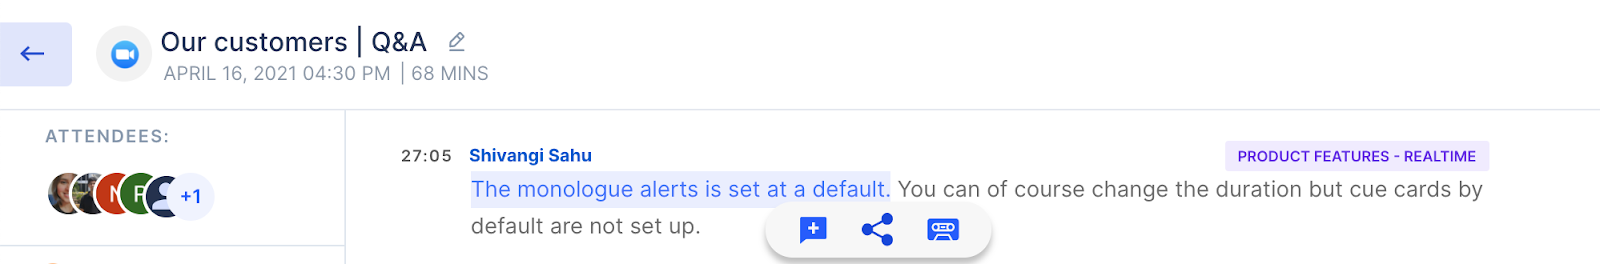 Select and copy the call transcript